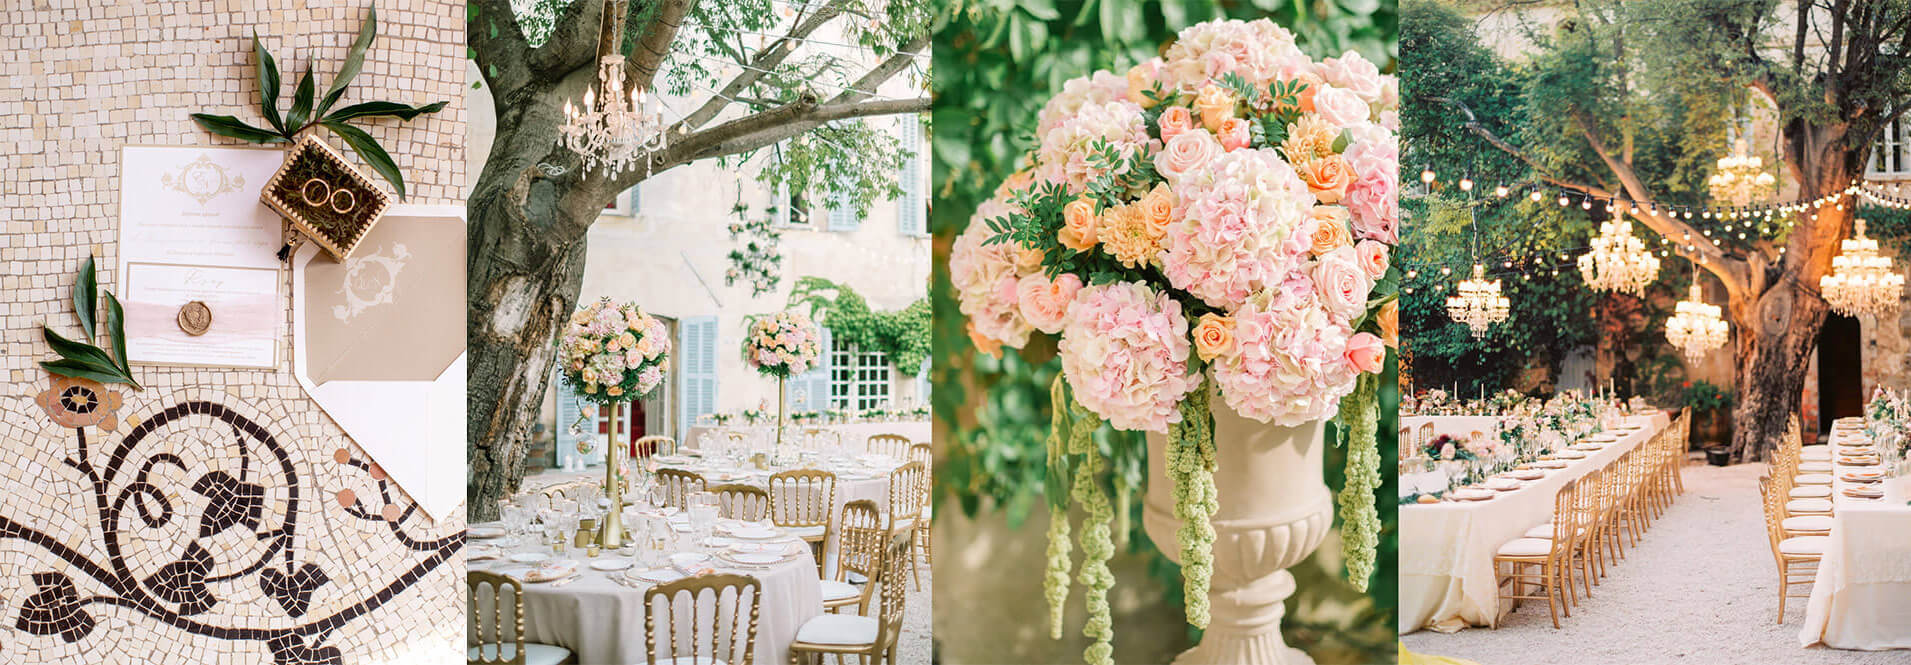 Contact Wedding Planner French Riviera